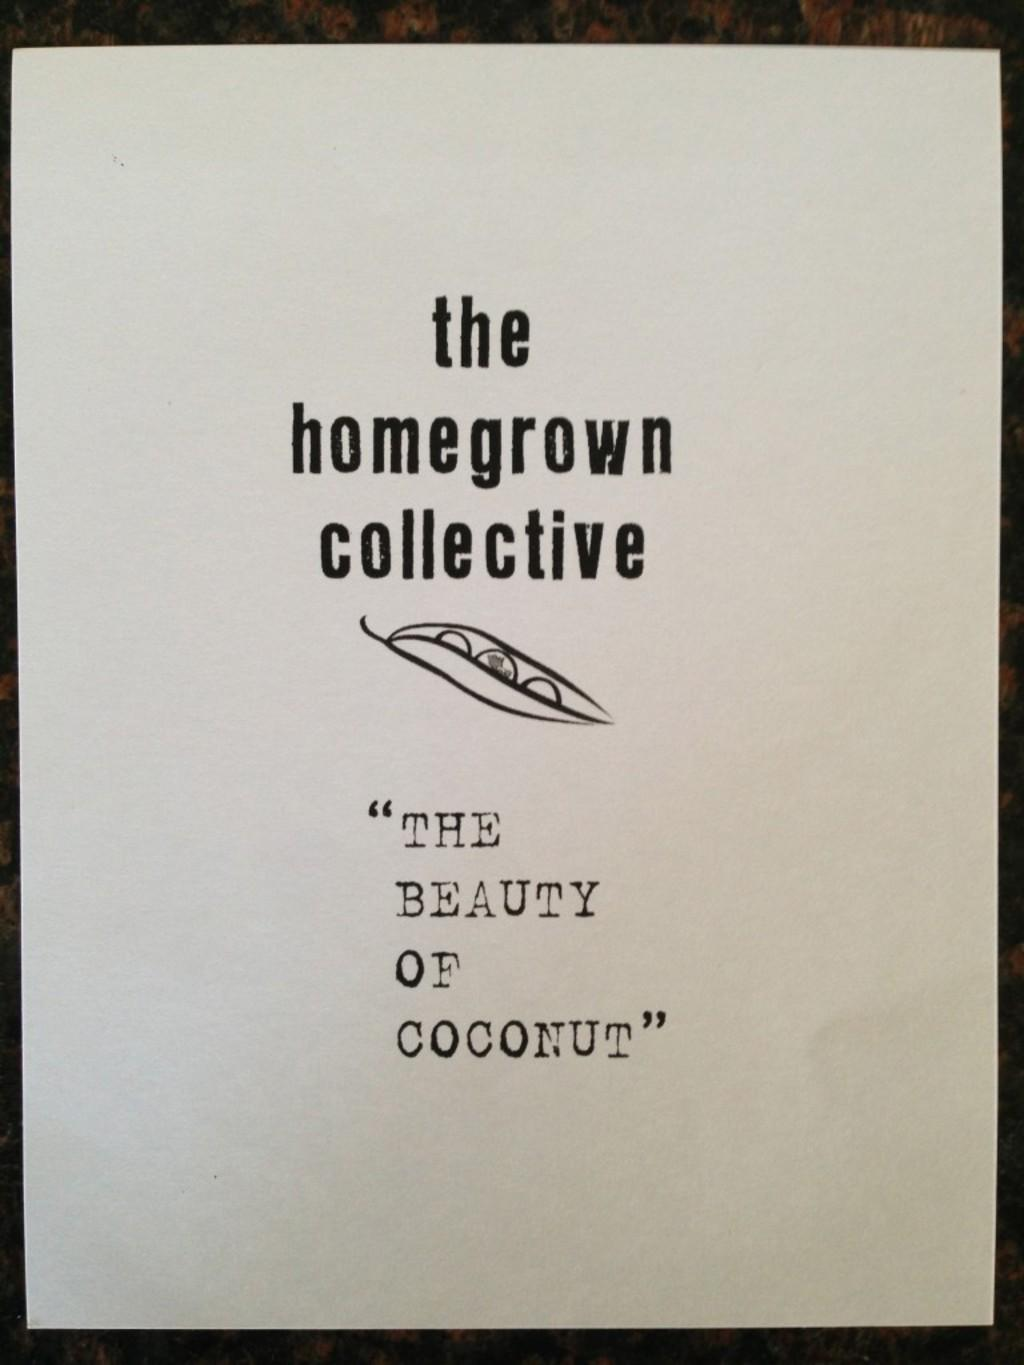 August The Homegrown Collective